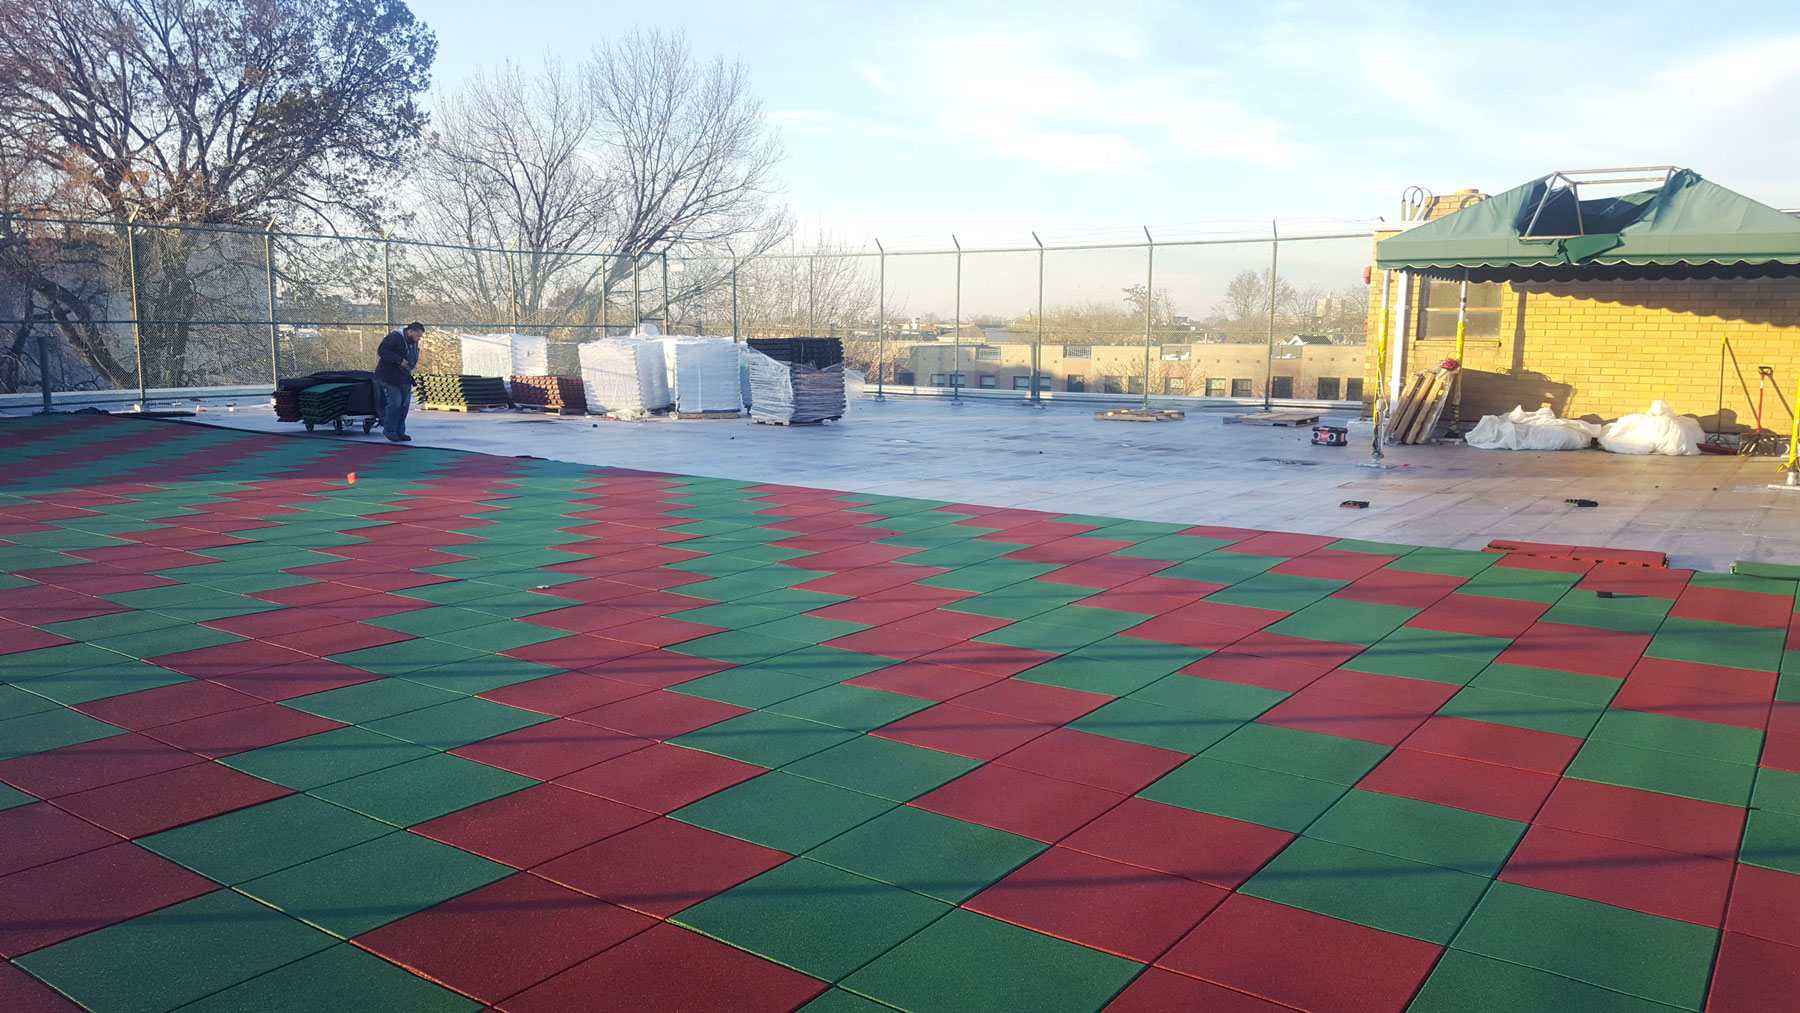 Rooftop Rubber Mat Playground Safety Surface Installers   adventureTURF   New York City